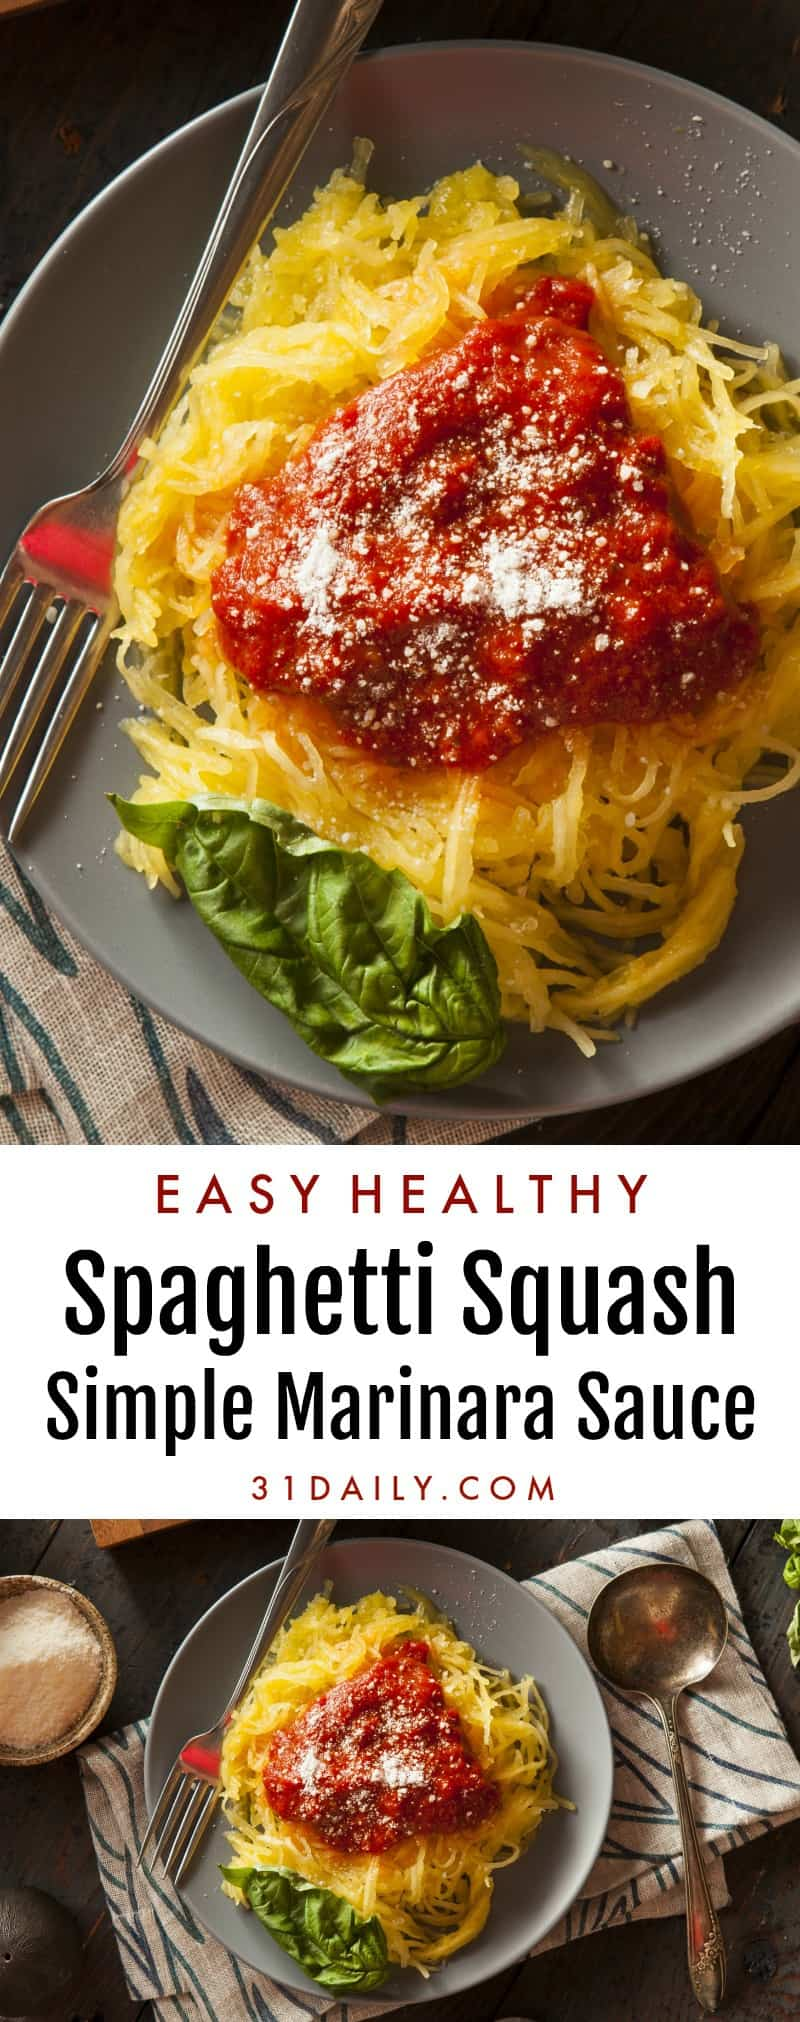 Spaghetti Squash with Simple Marinara Sauce: Easy, Healthy and Meatless | 31Daily.com